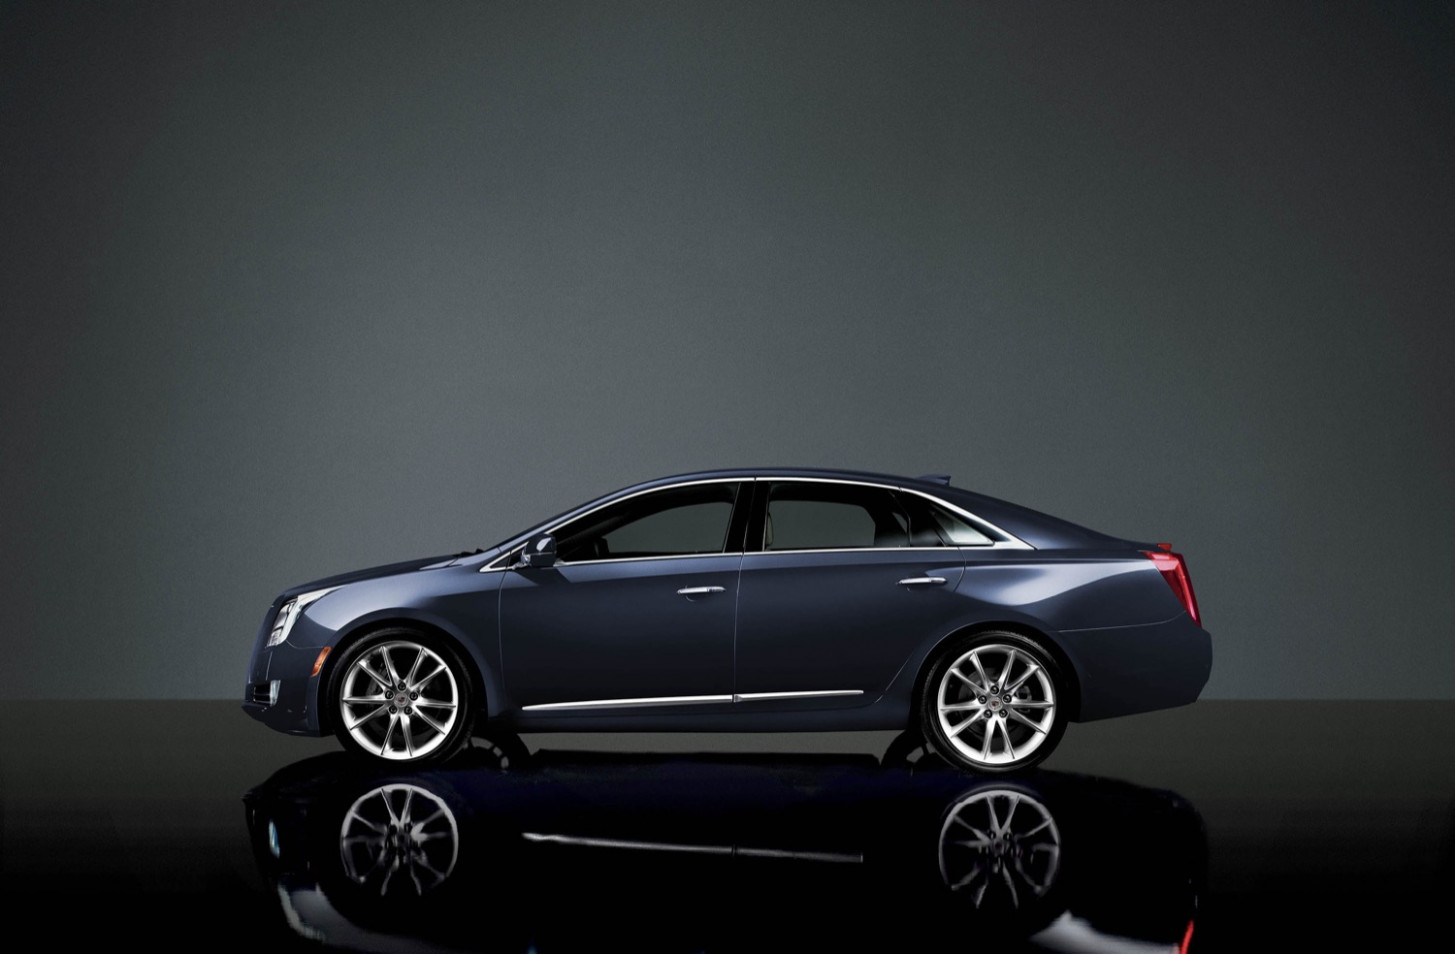 11 Cadillac XTS Info, Pictures, Specs, Wiki | GM Authority - 2020 cadillac xts